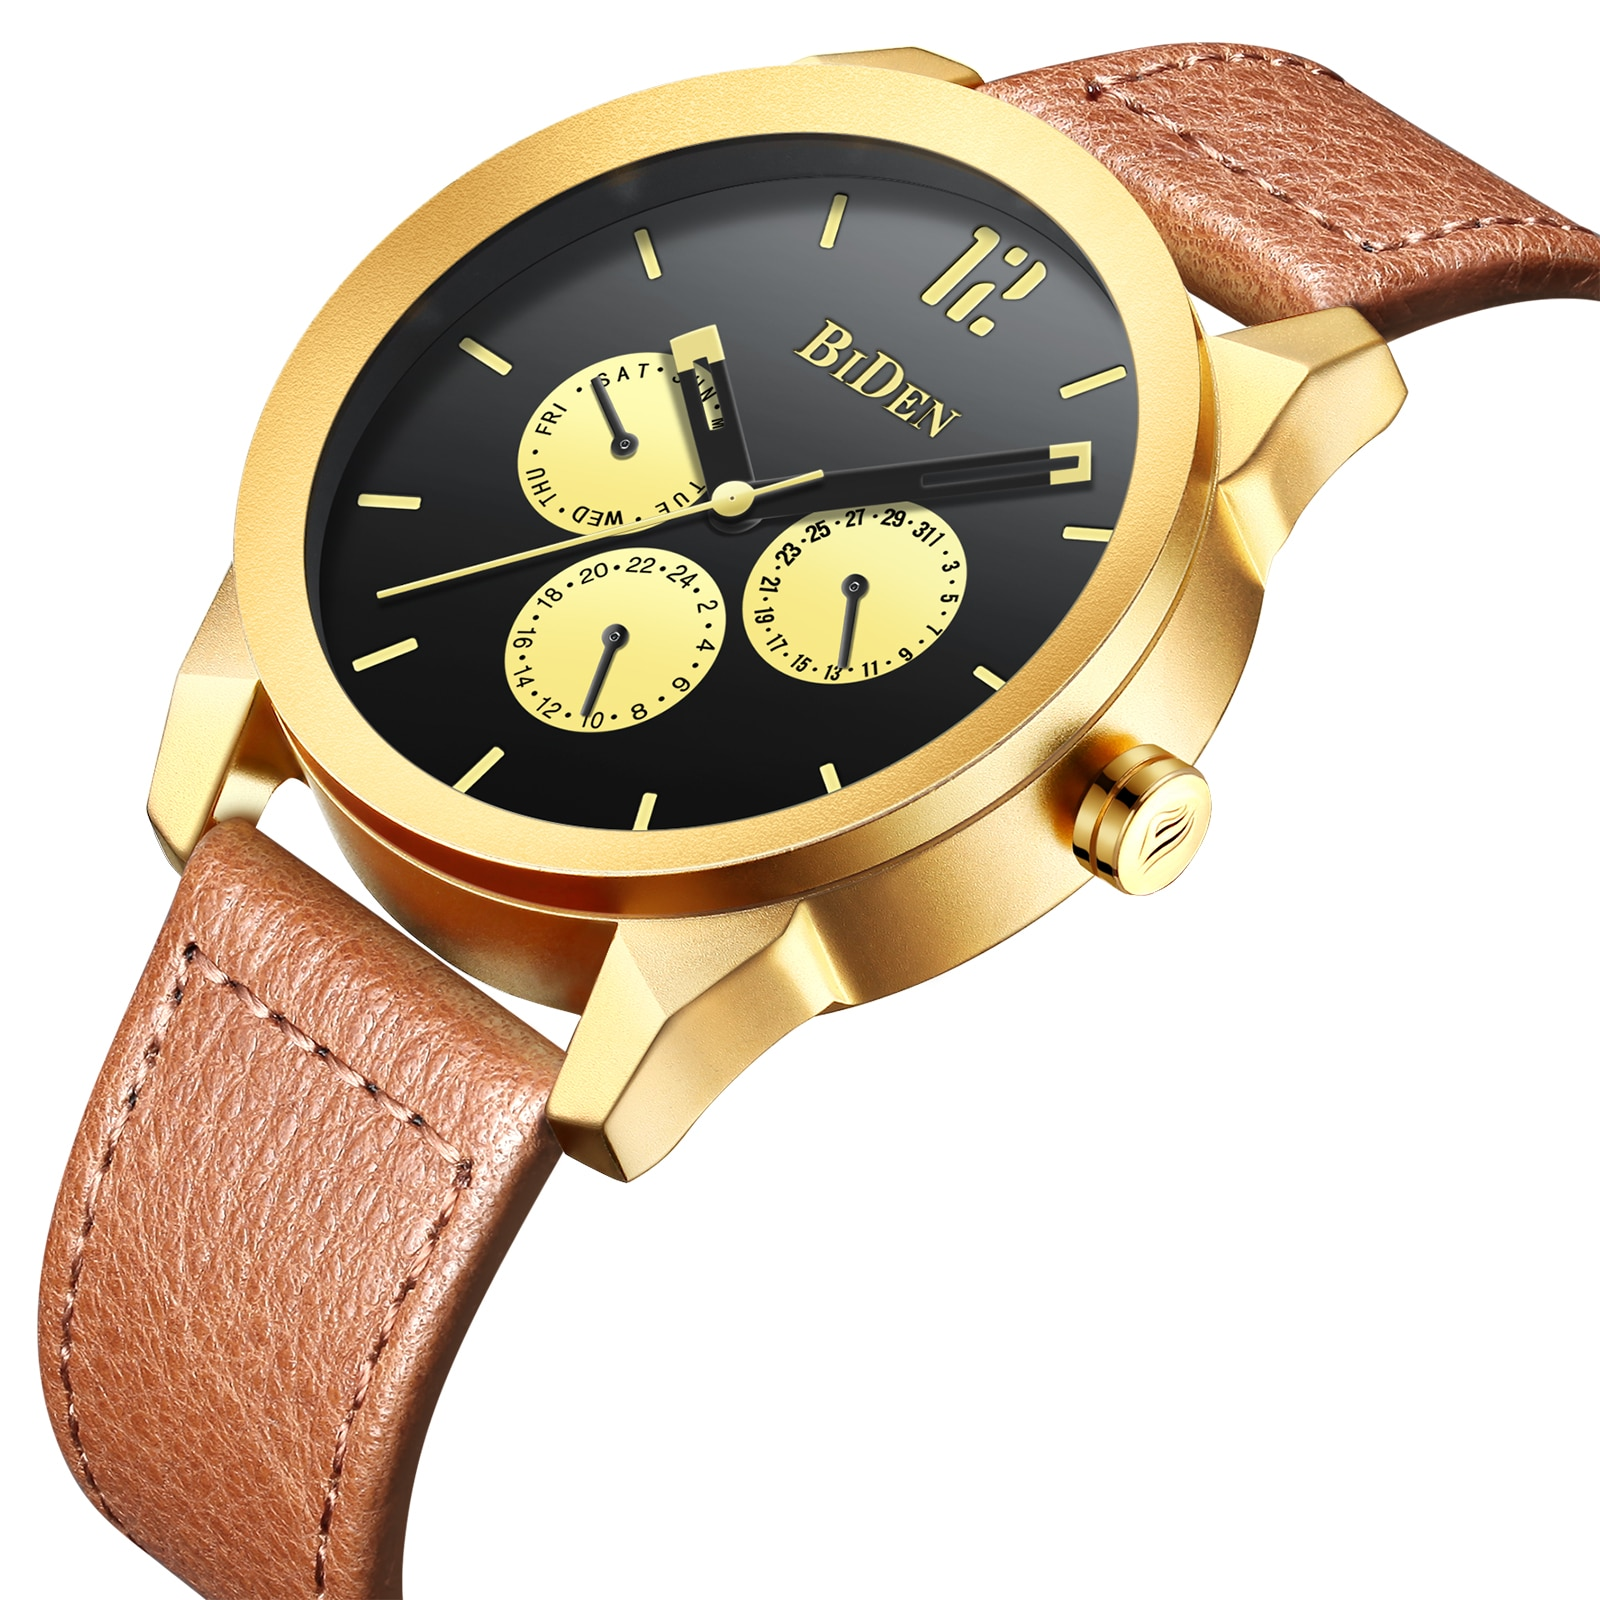 BIDEN Mens Wrist Watch Golden Quartz Male Watches Retro Leather Strap Calendar Week Display Waterproof Relogio Masculino Clock yelang v1021 aviator serier t100 tritium tubes flourescent numbers 100m waterproof leather strap mens quartz wrist watch